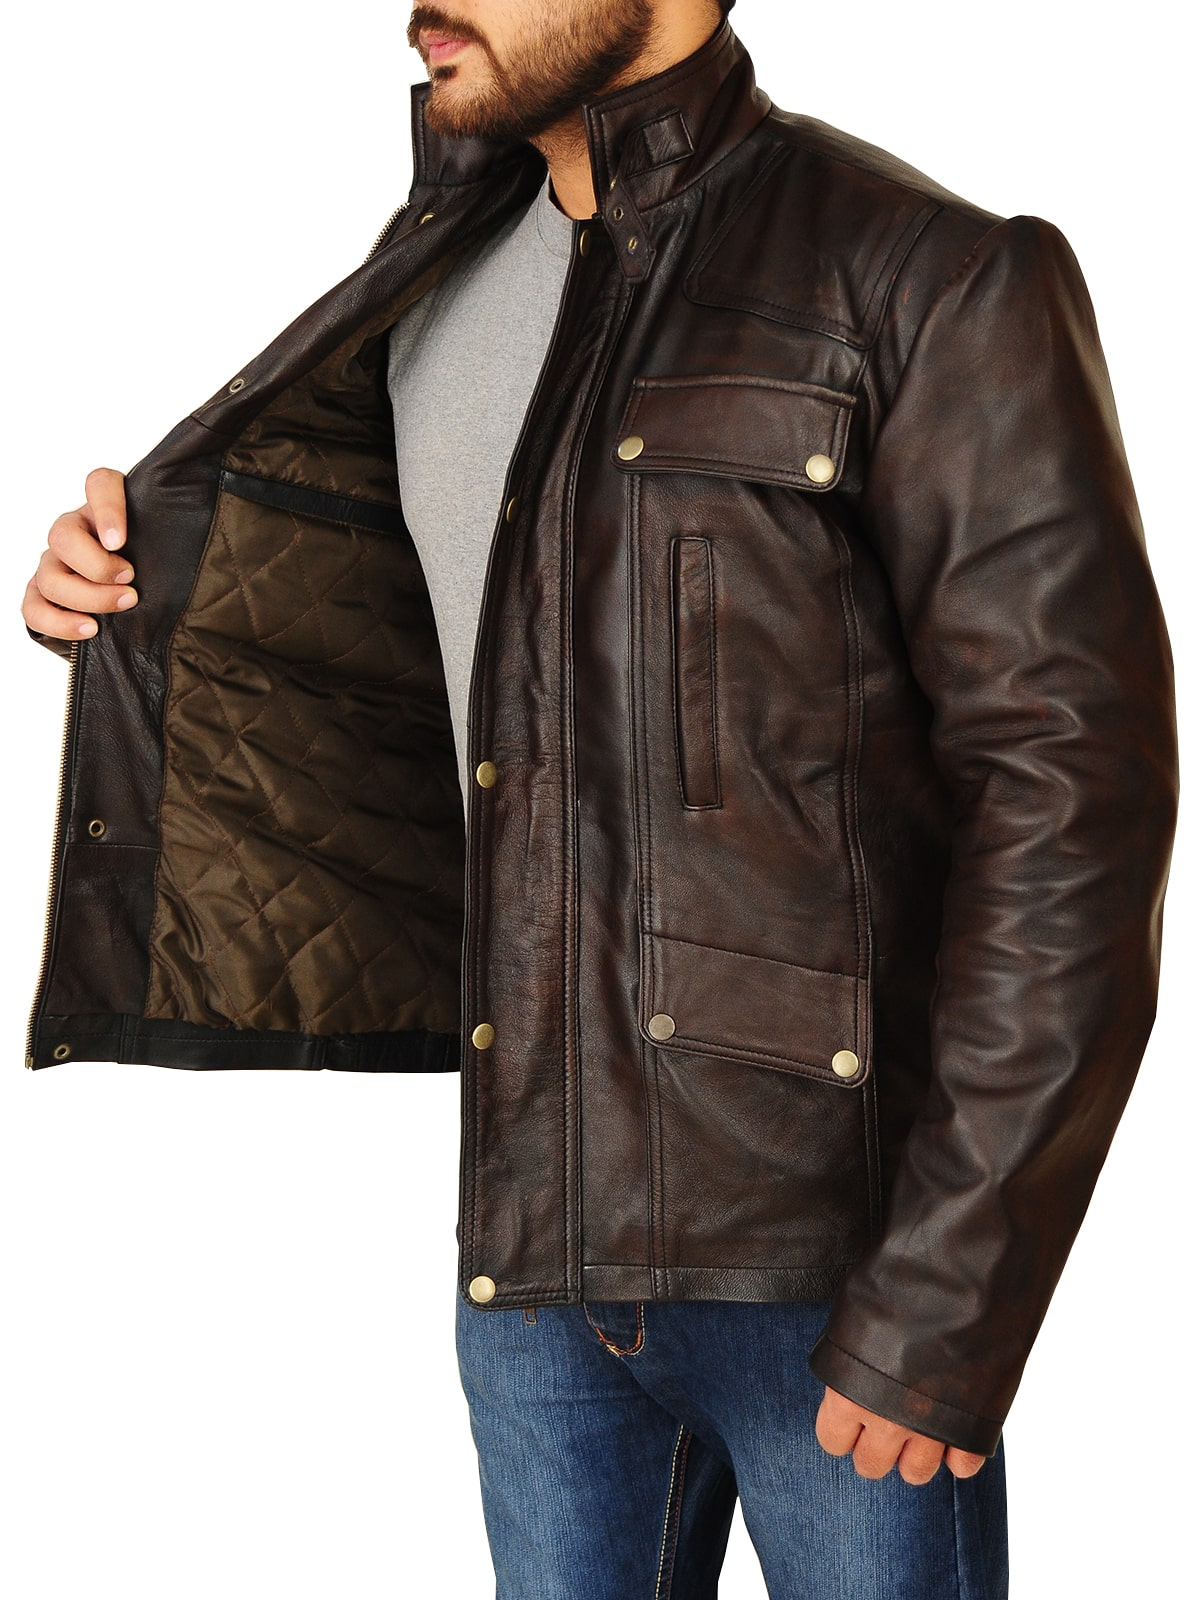 Dark Brown Real Leather Jacket For Men's